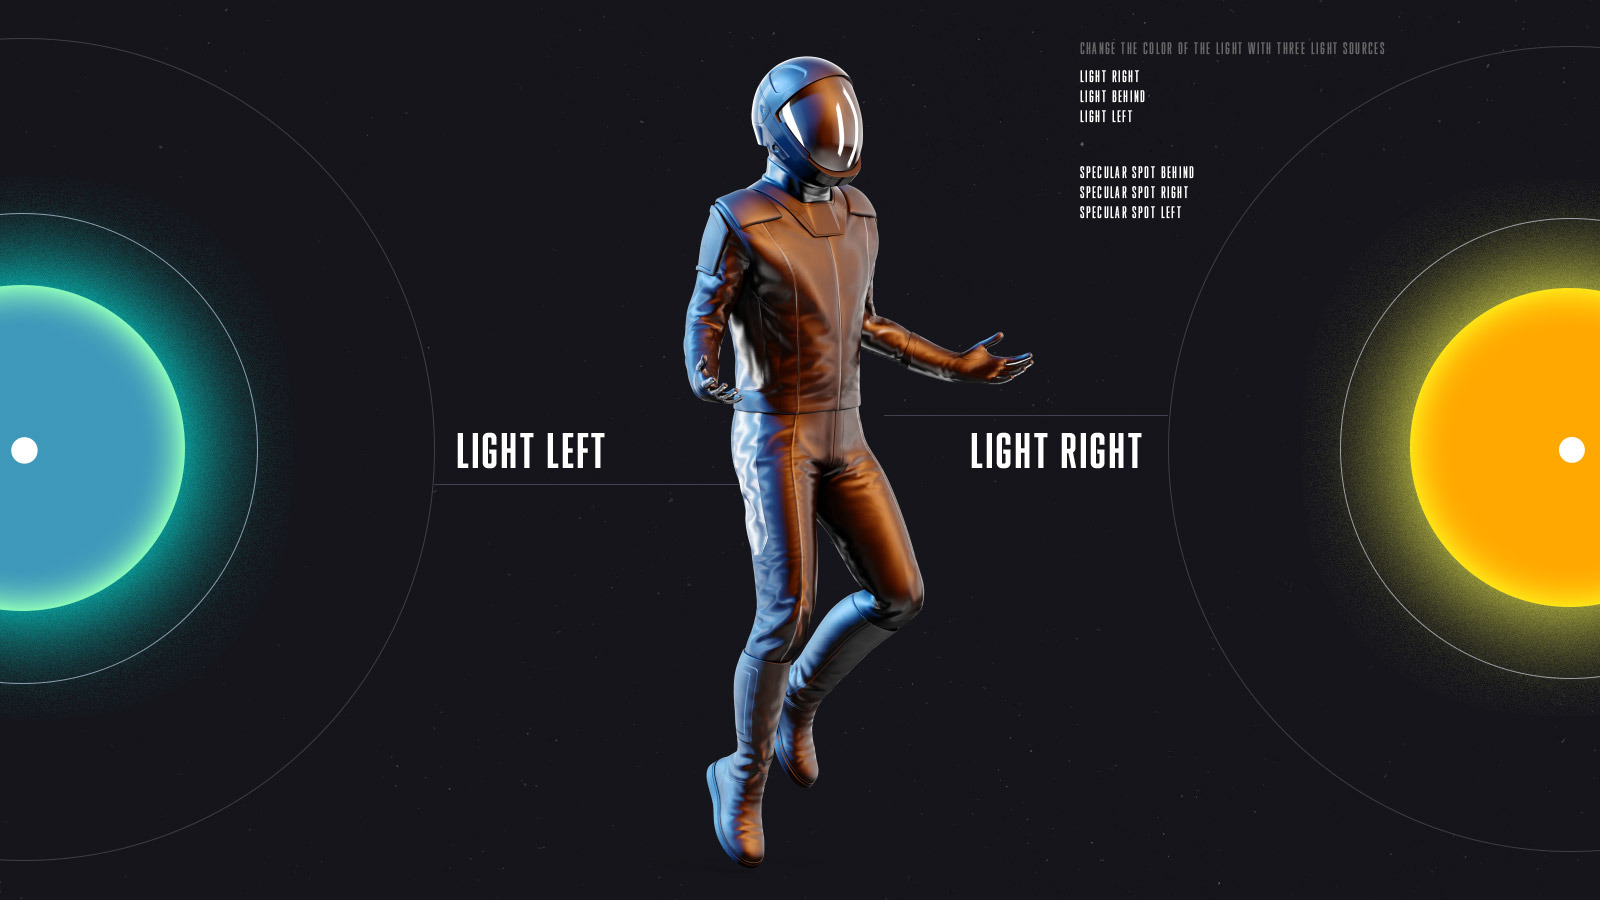 PSD Mockup 3D model SpaceX Astronaut #07